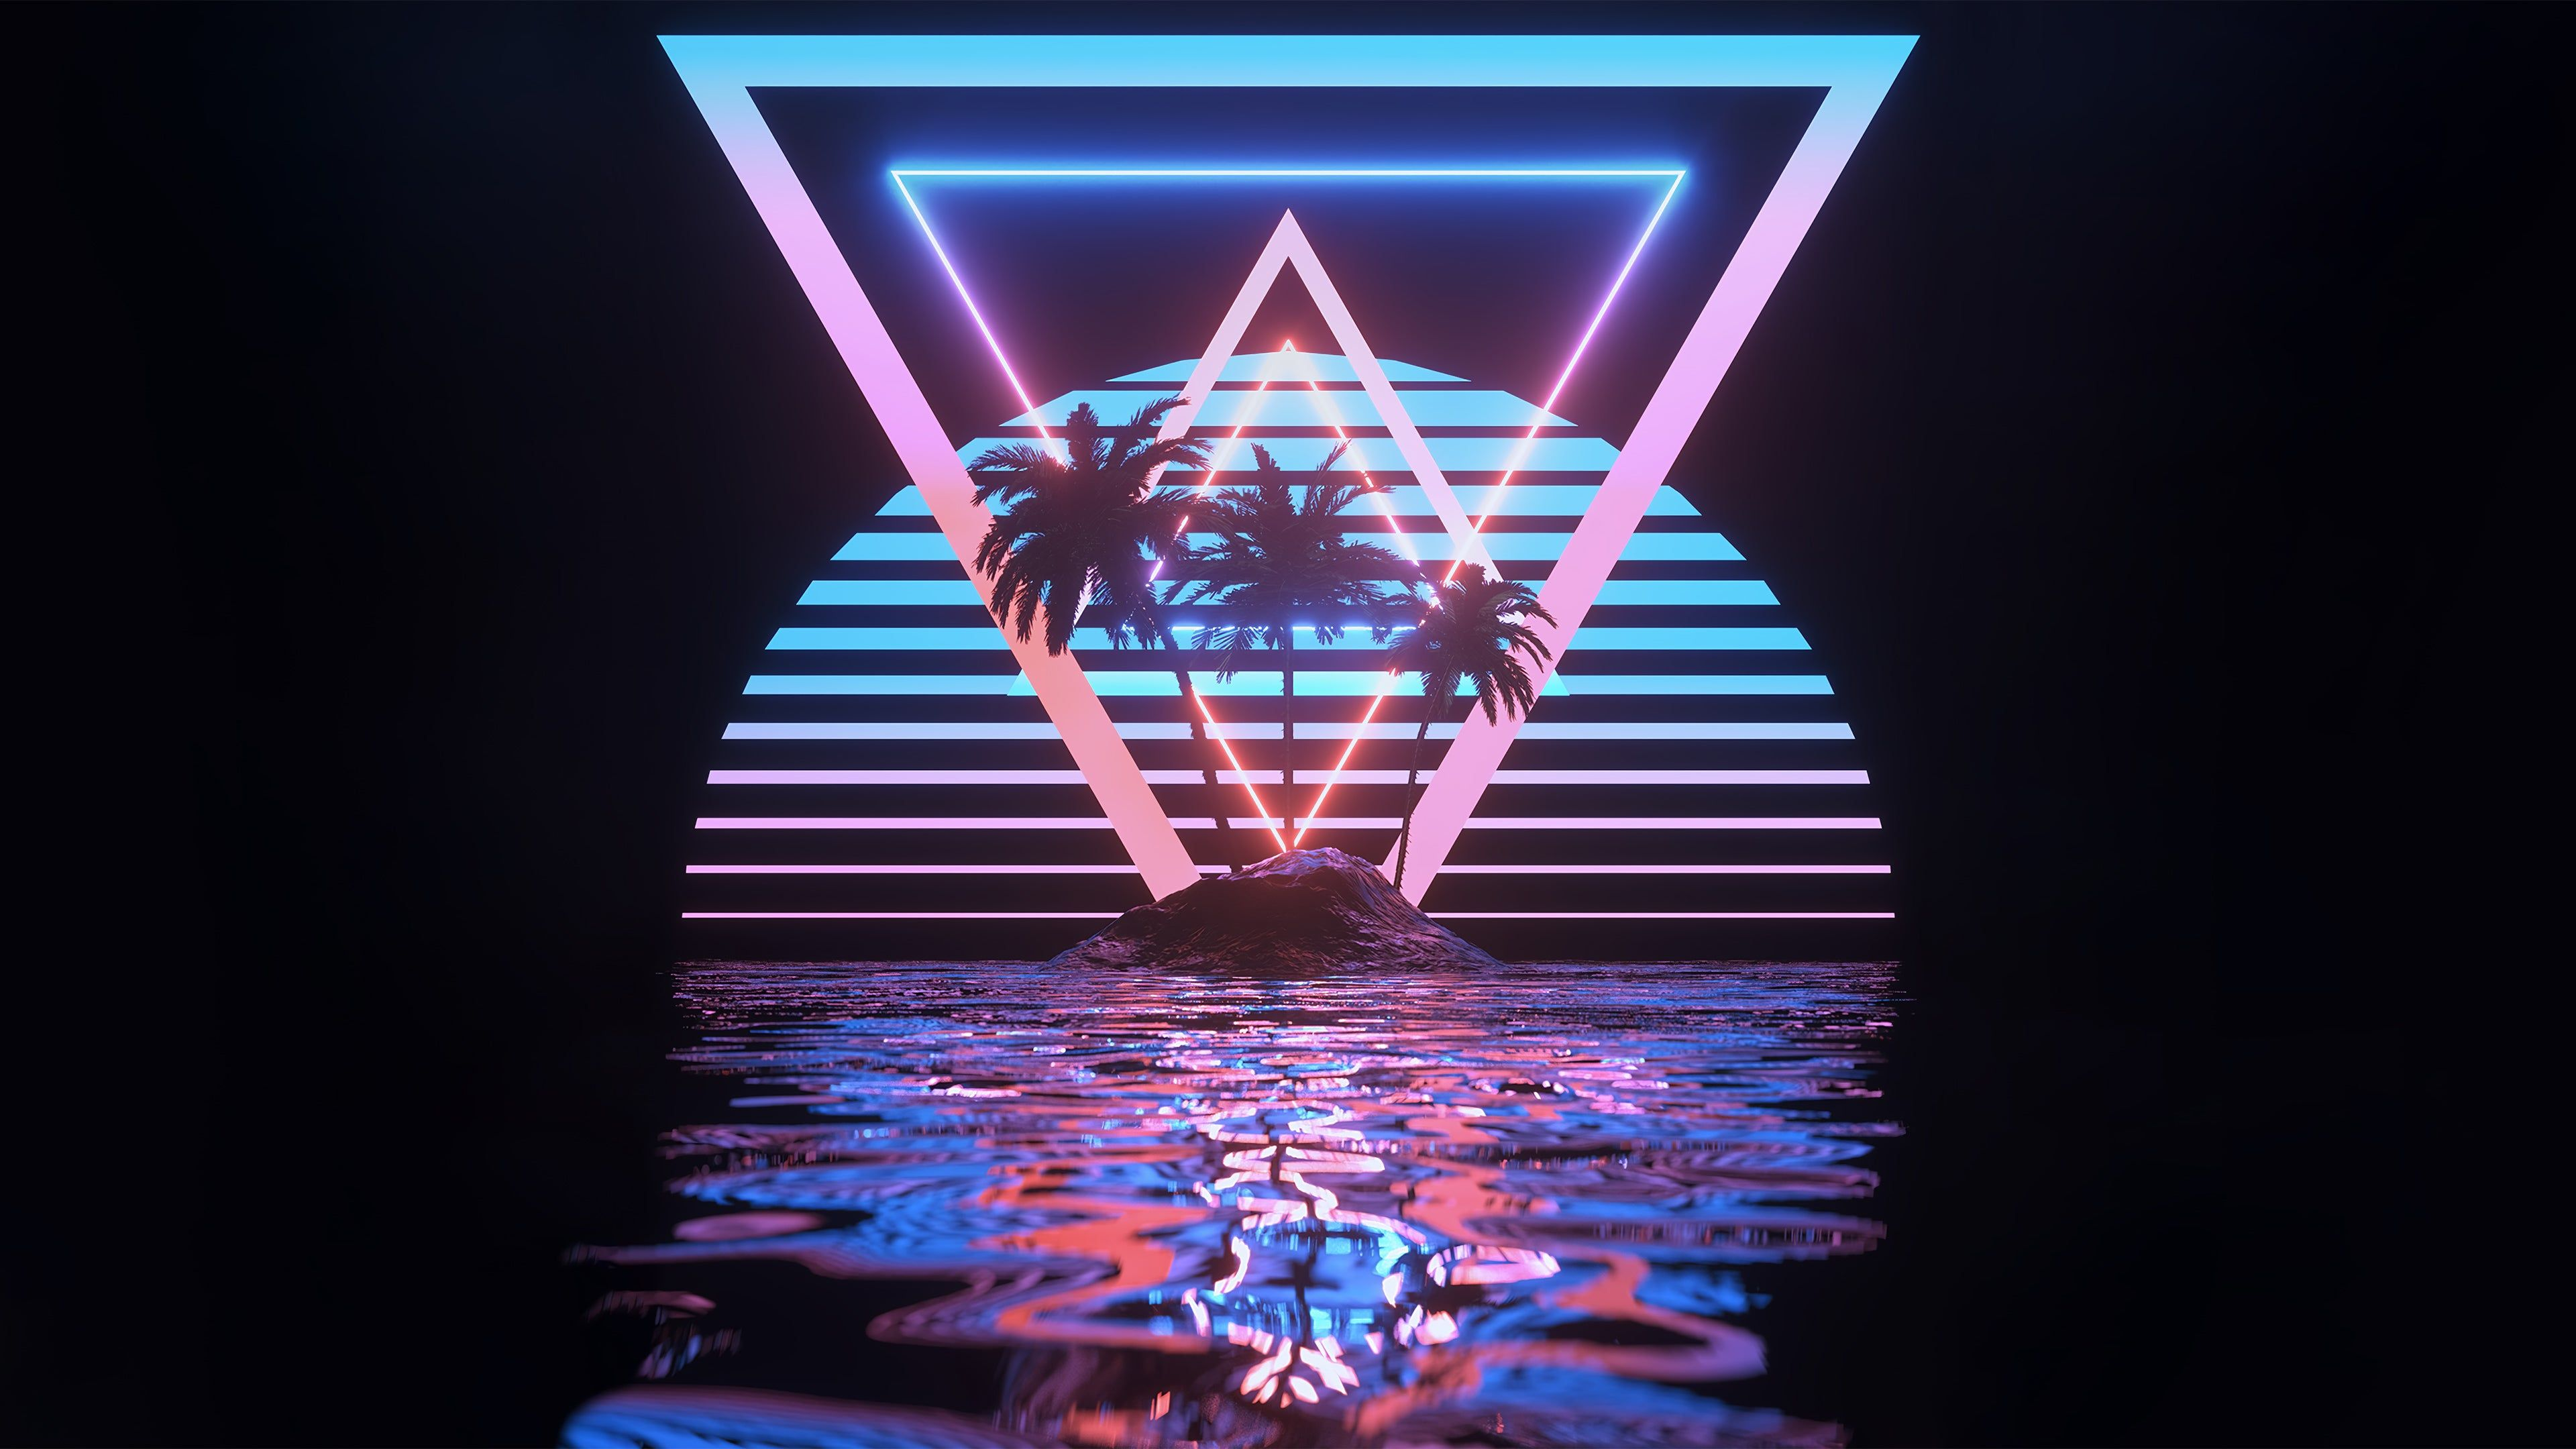 Tropical Paradise outrun Aesthetic backgrounds